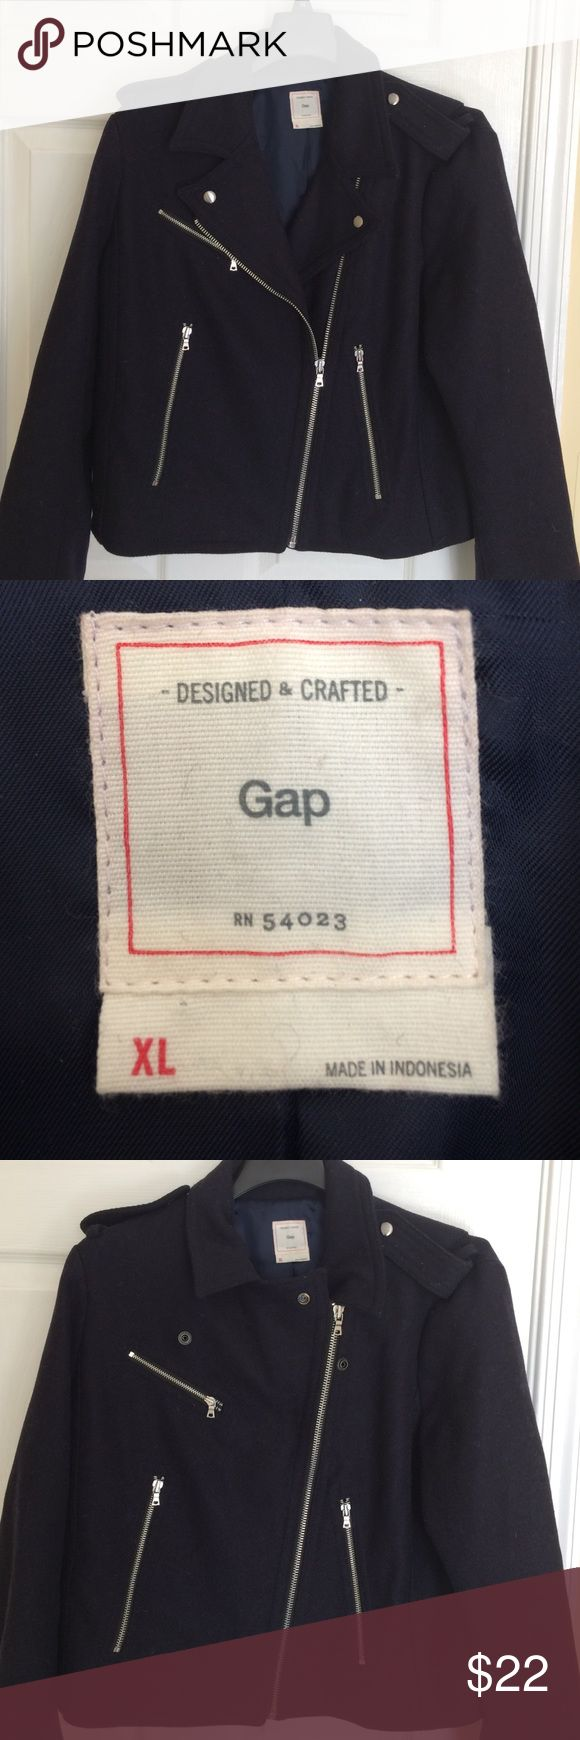 Women's Gap jacket Navy blue gap jacket in excellent condition. Warm jacket with 3 front pockets. Selling for my sister! GAP Jackets & Coats